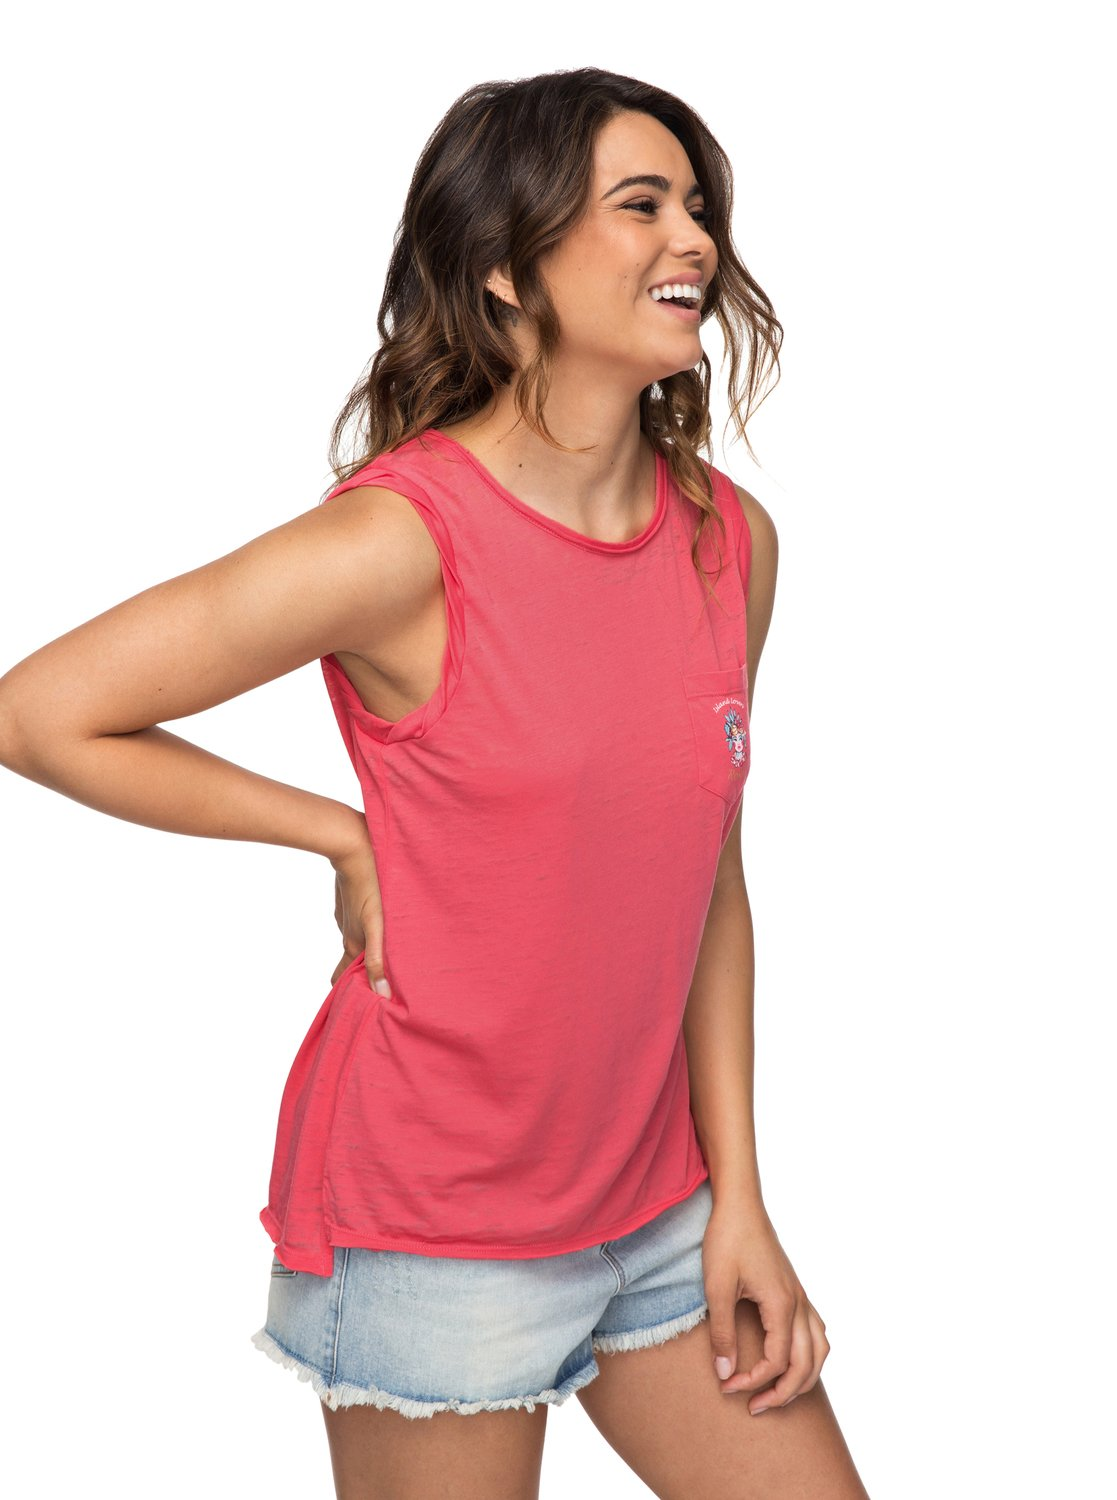 b3a0f5da425f5e 1 Time For Another Day A - Sleeveless T-Shirt for Women ERJZT04156 Roxy